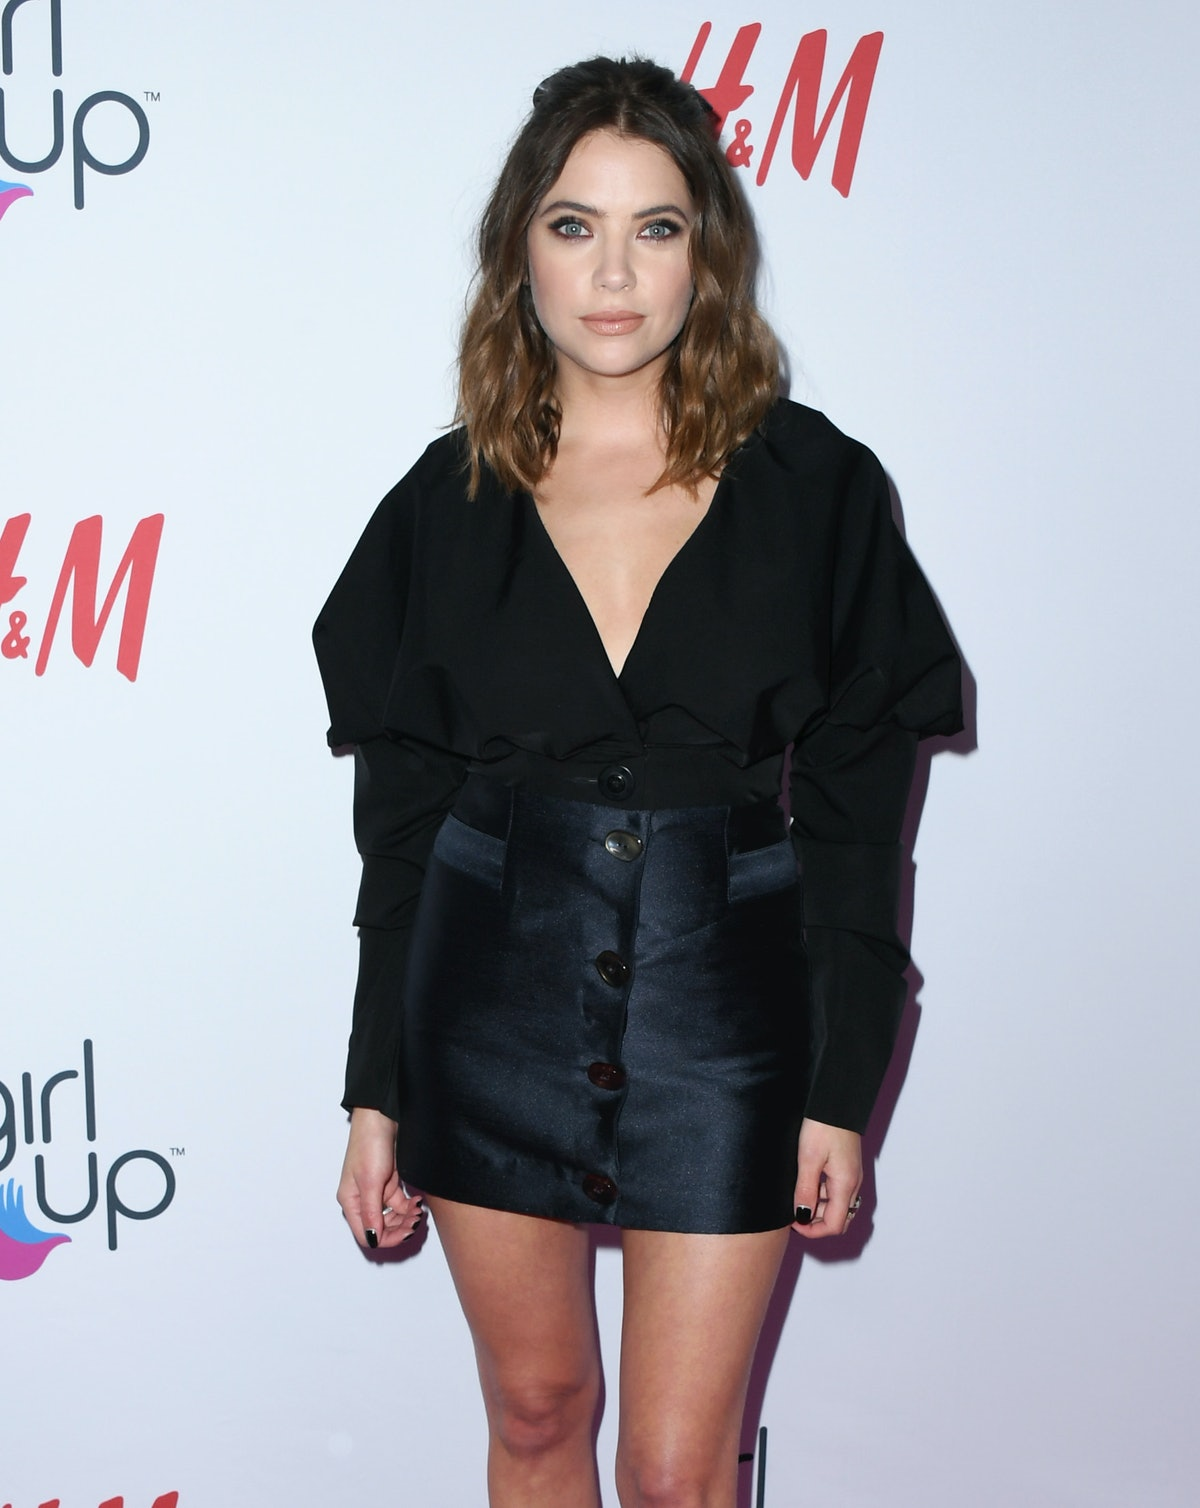 Ashley Benson's long, brown hair is different from her usual shorter hairstyle